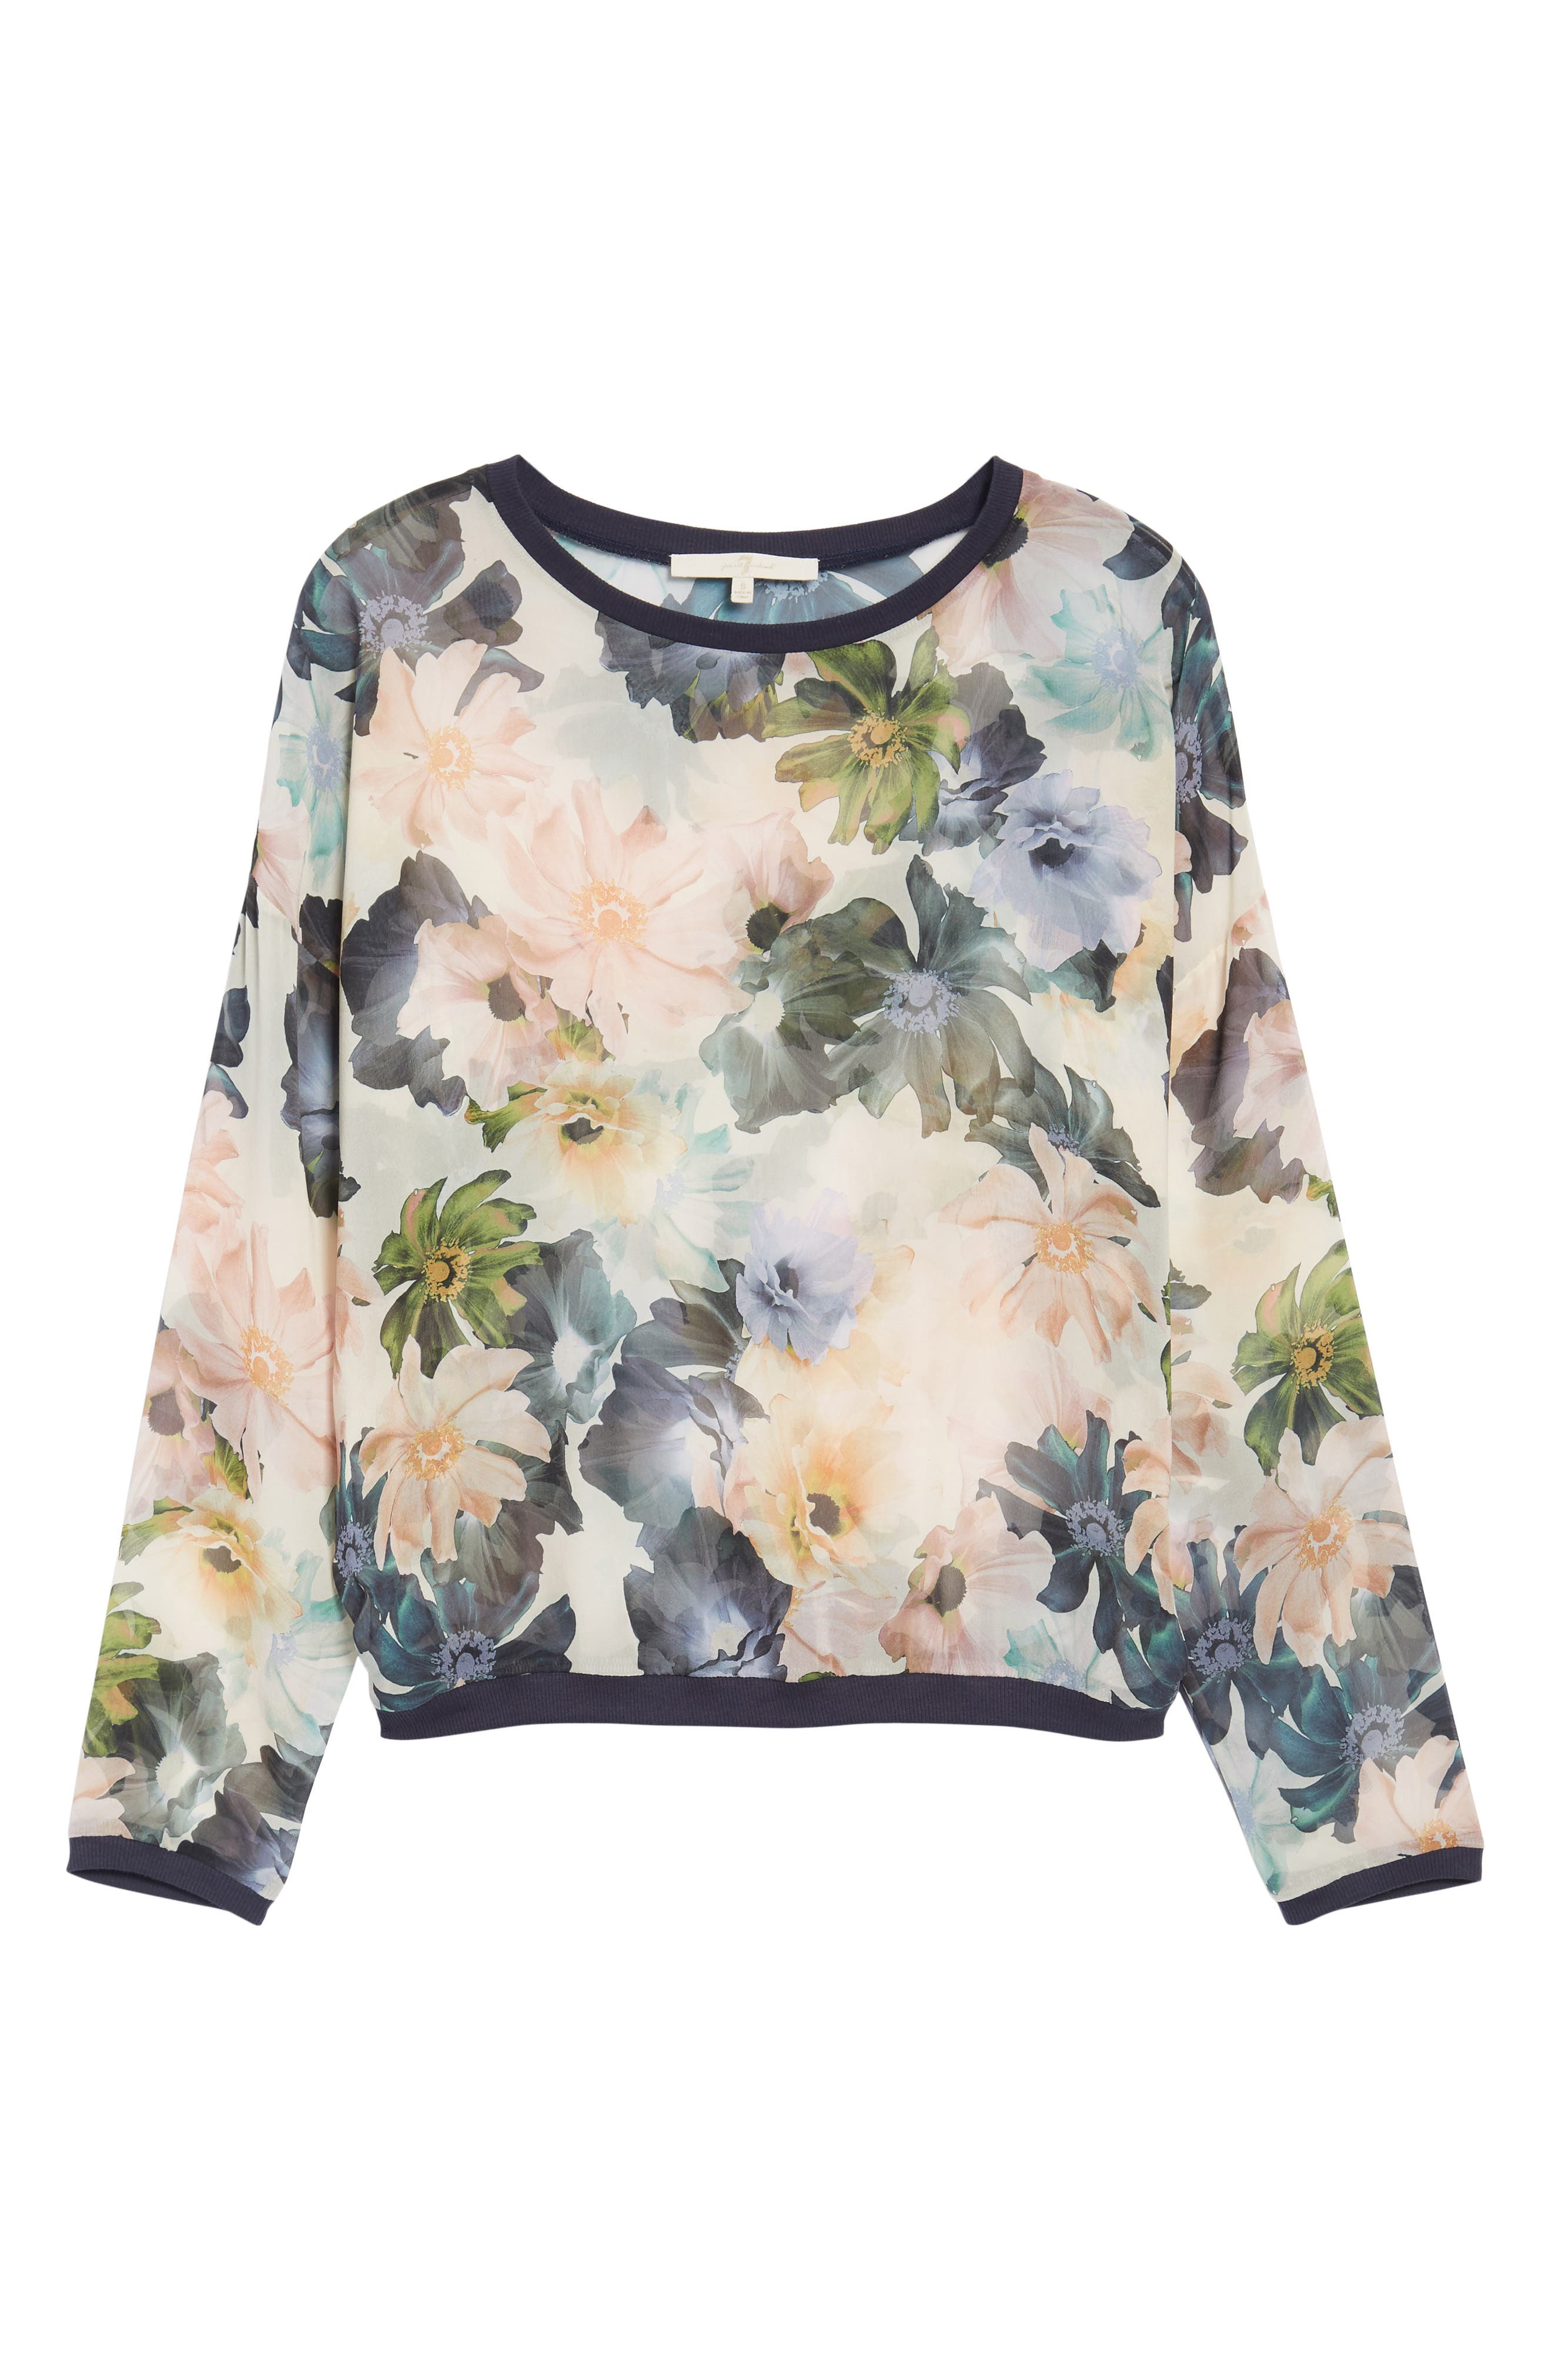 Georgette Sweatshirt,                             Alternate thumbnail 6, color,                             Desert Garden Print